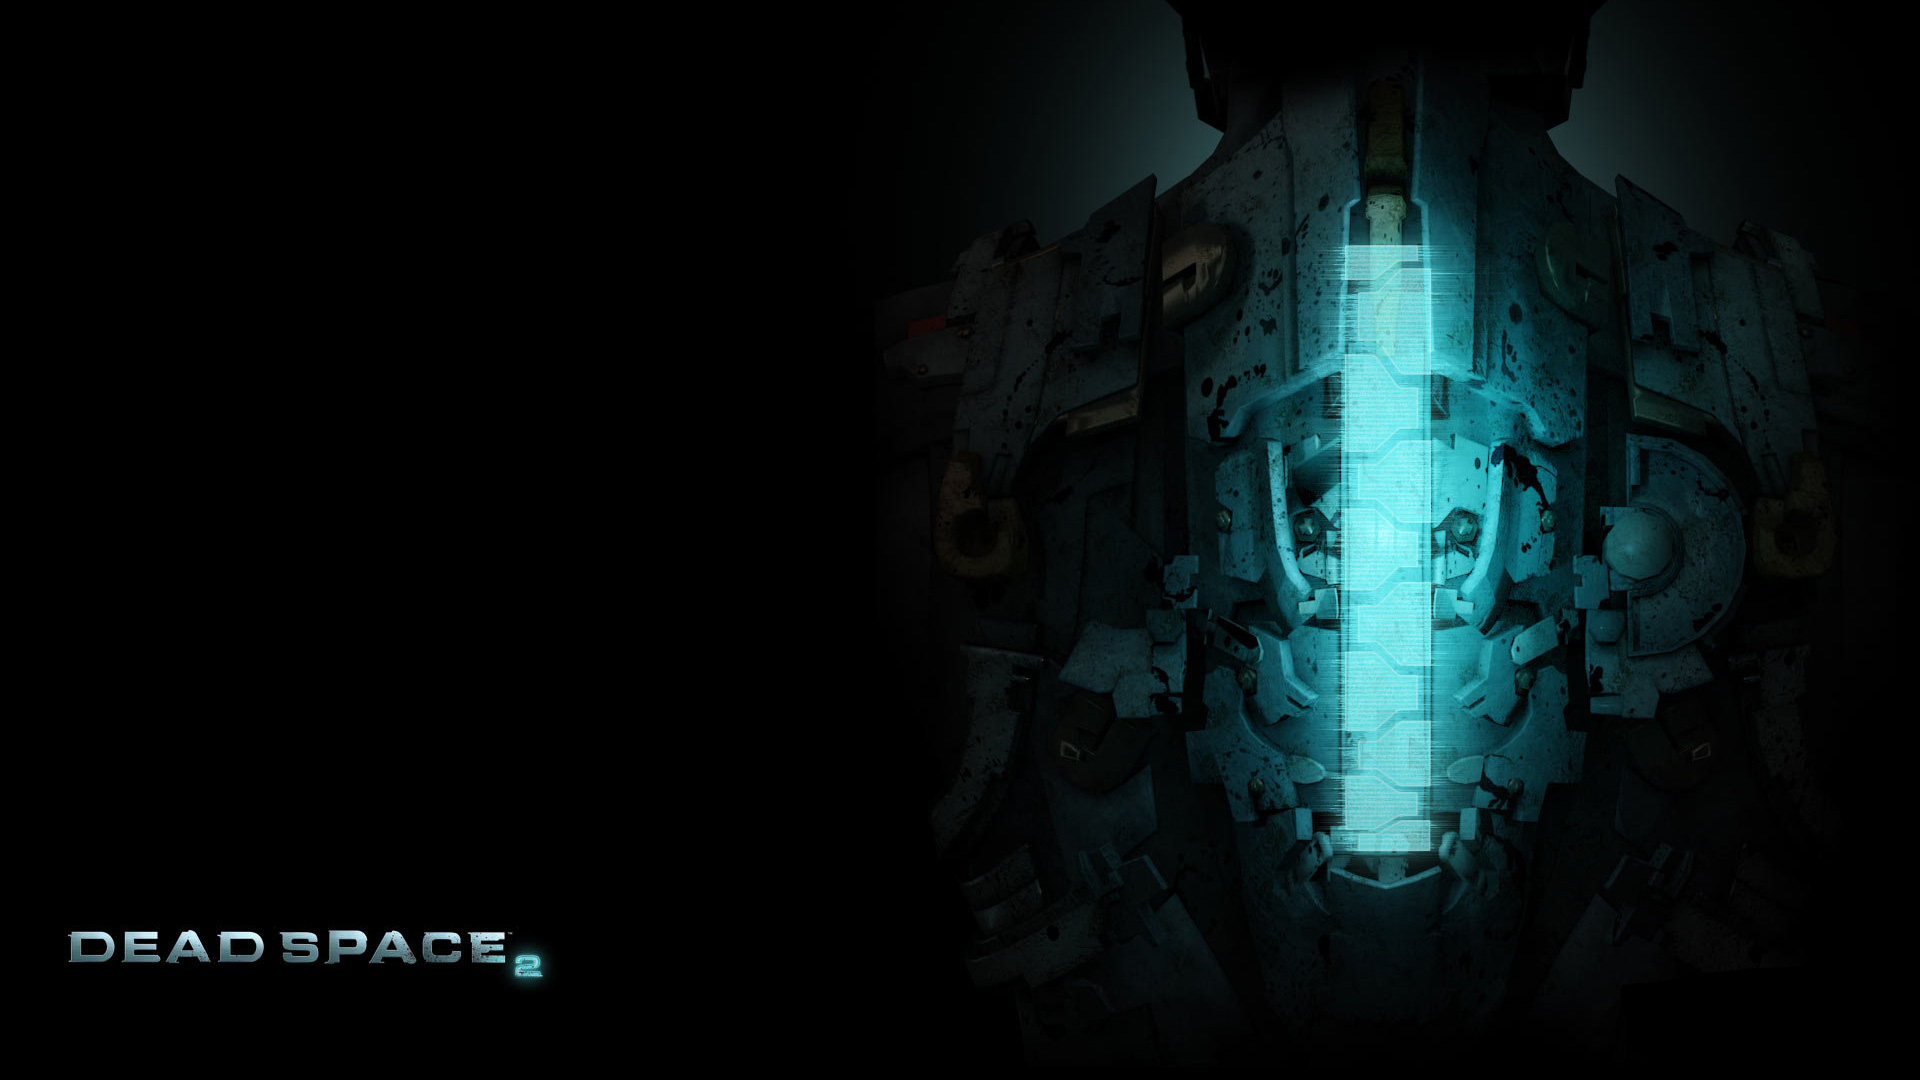 Dead Space 2 Wallpaper in 1920x1080